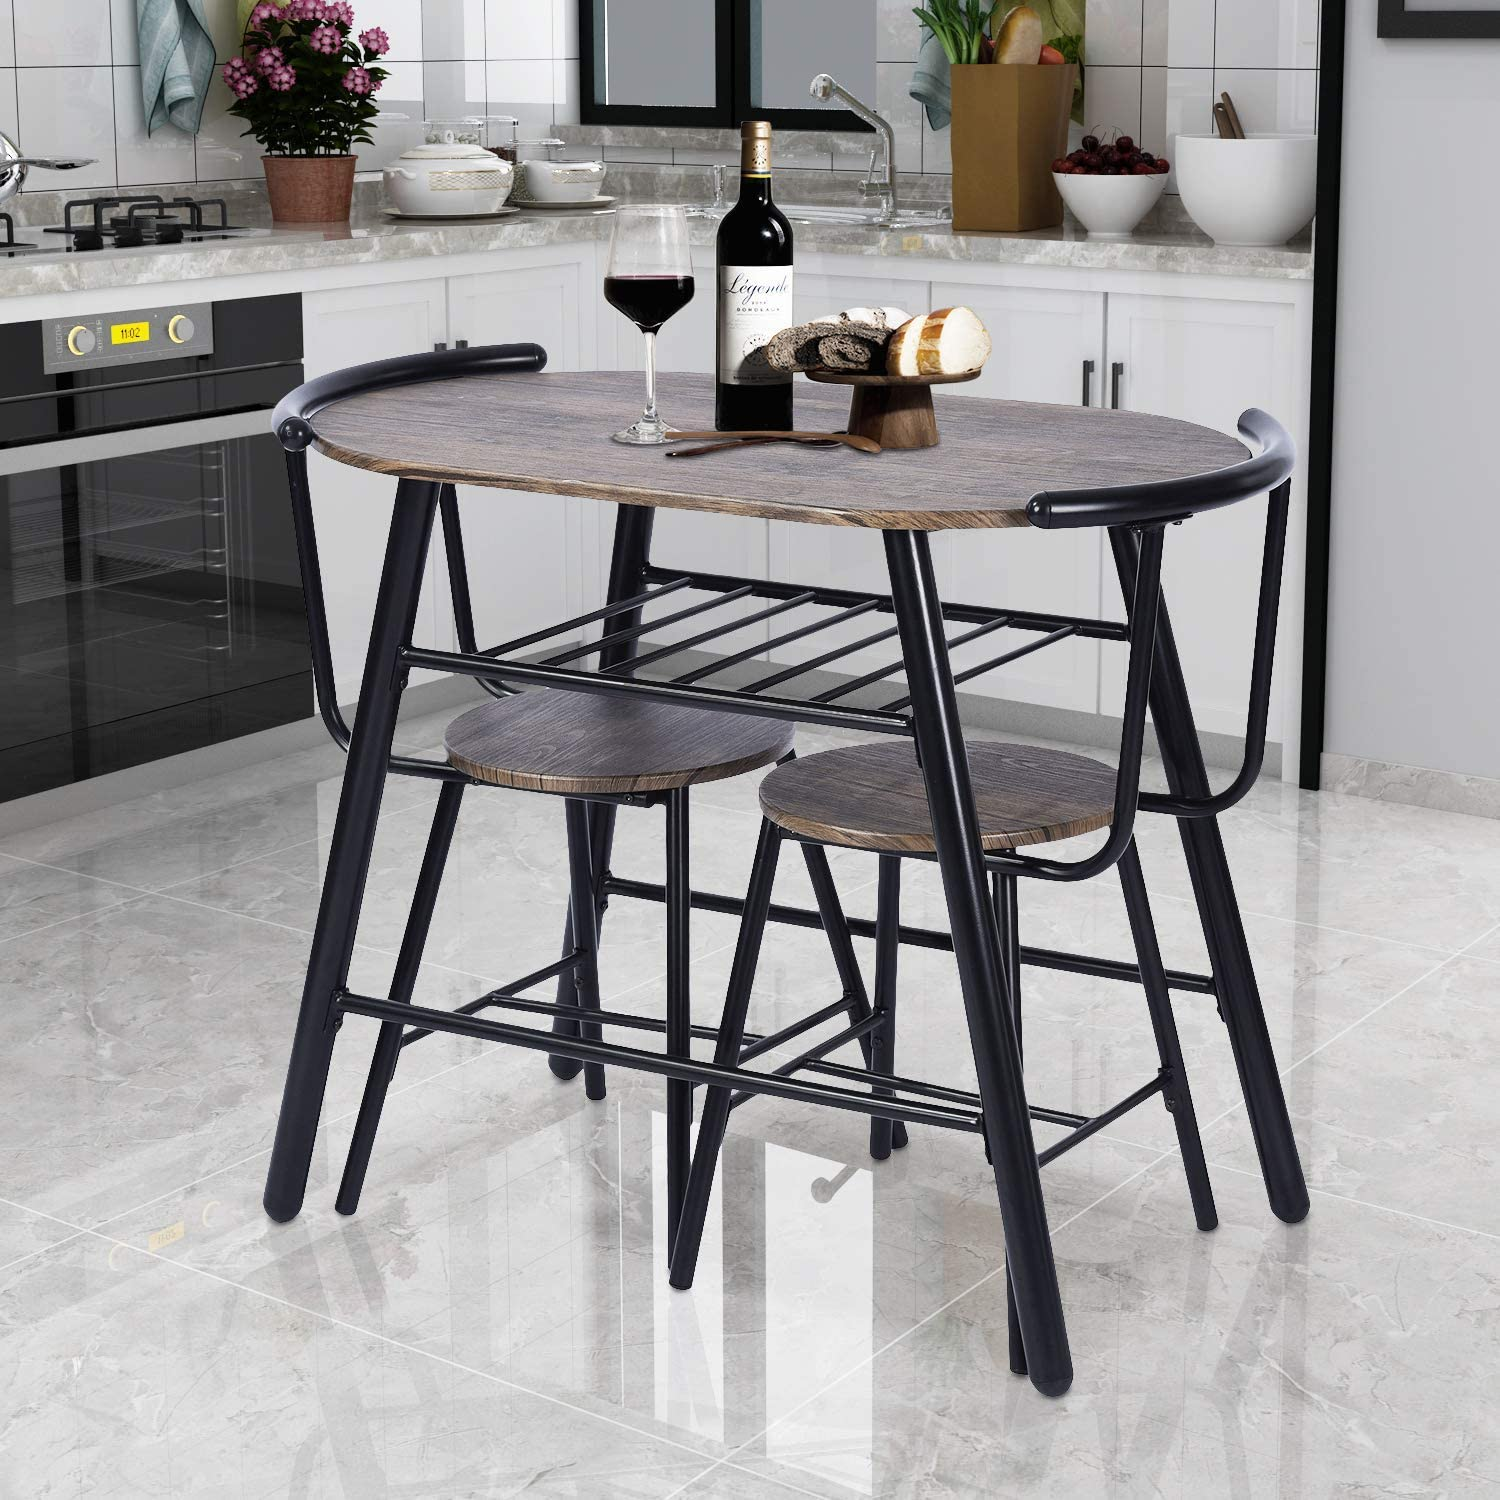 Dining Table And 4 Chairs Kitchen Wood Metal Compact Rustic Grey Breakfast Set